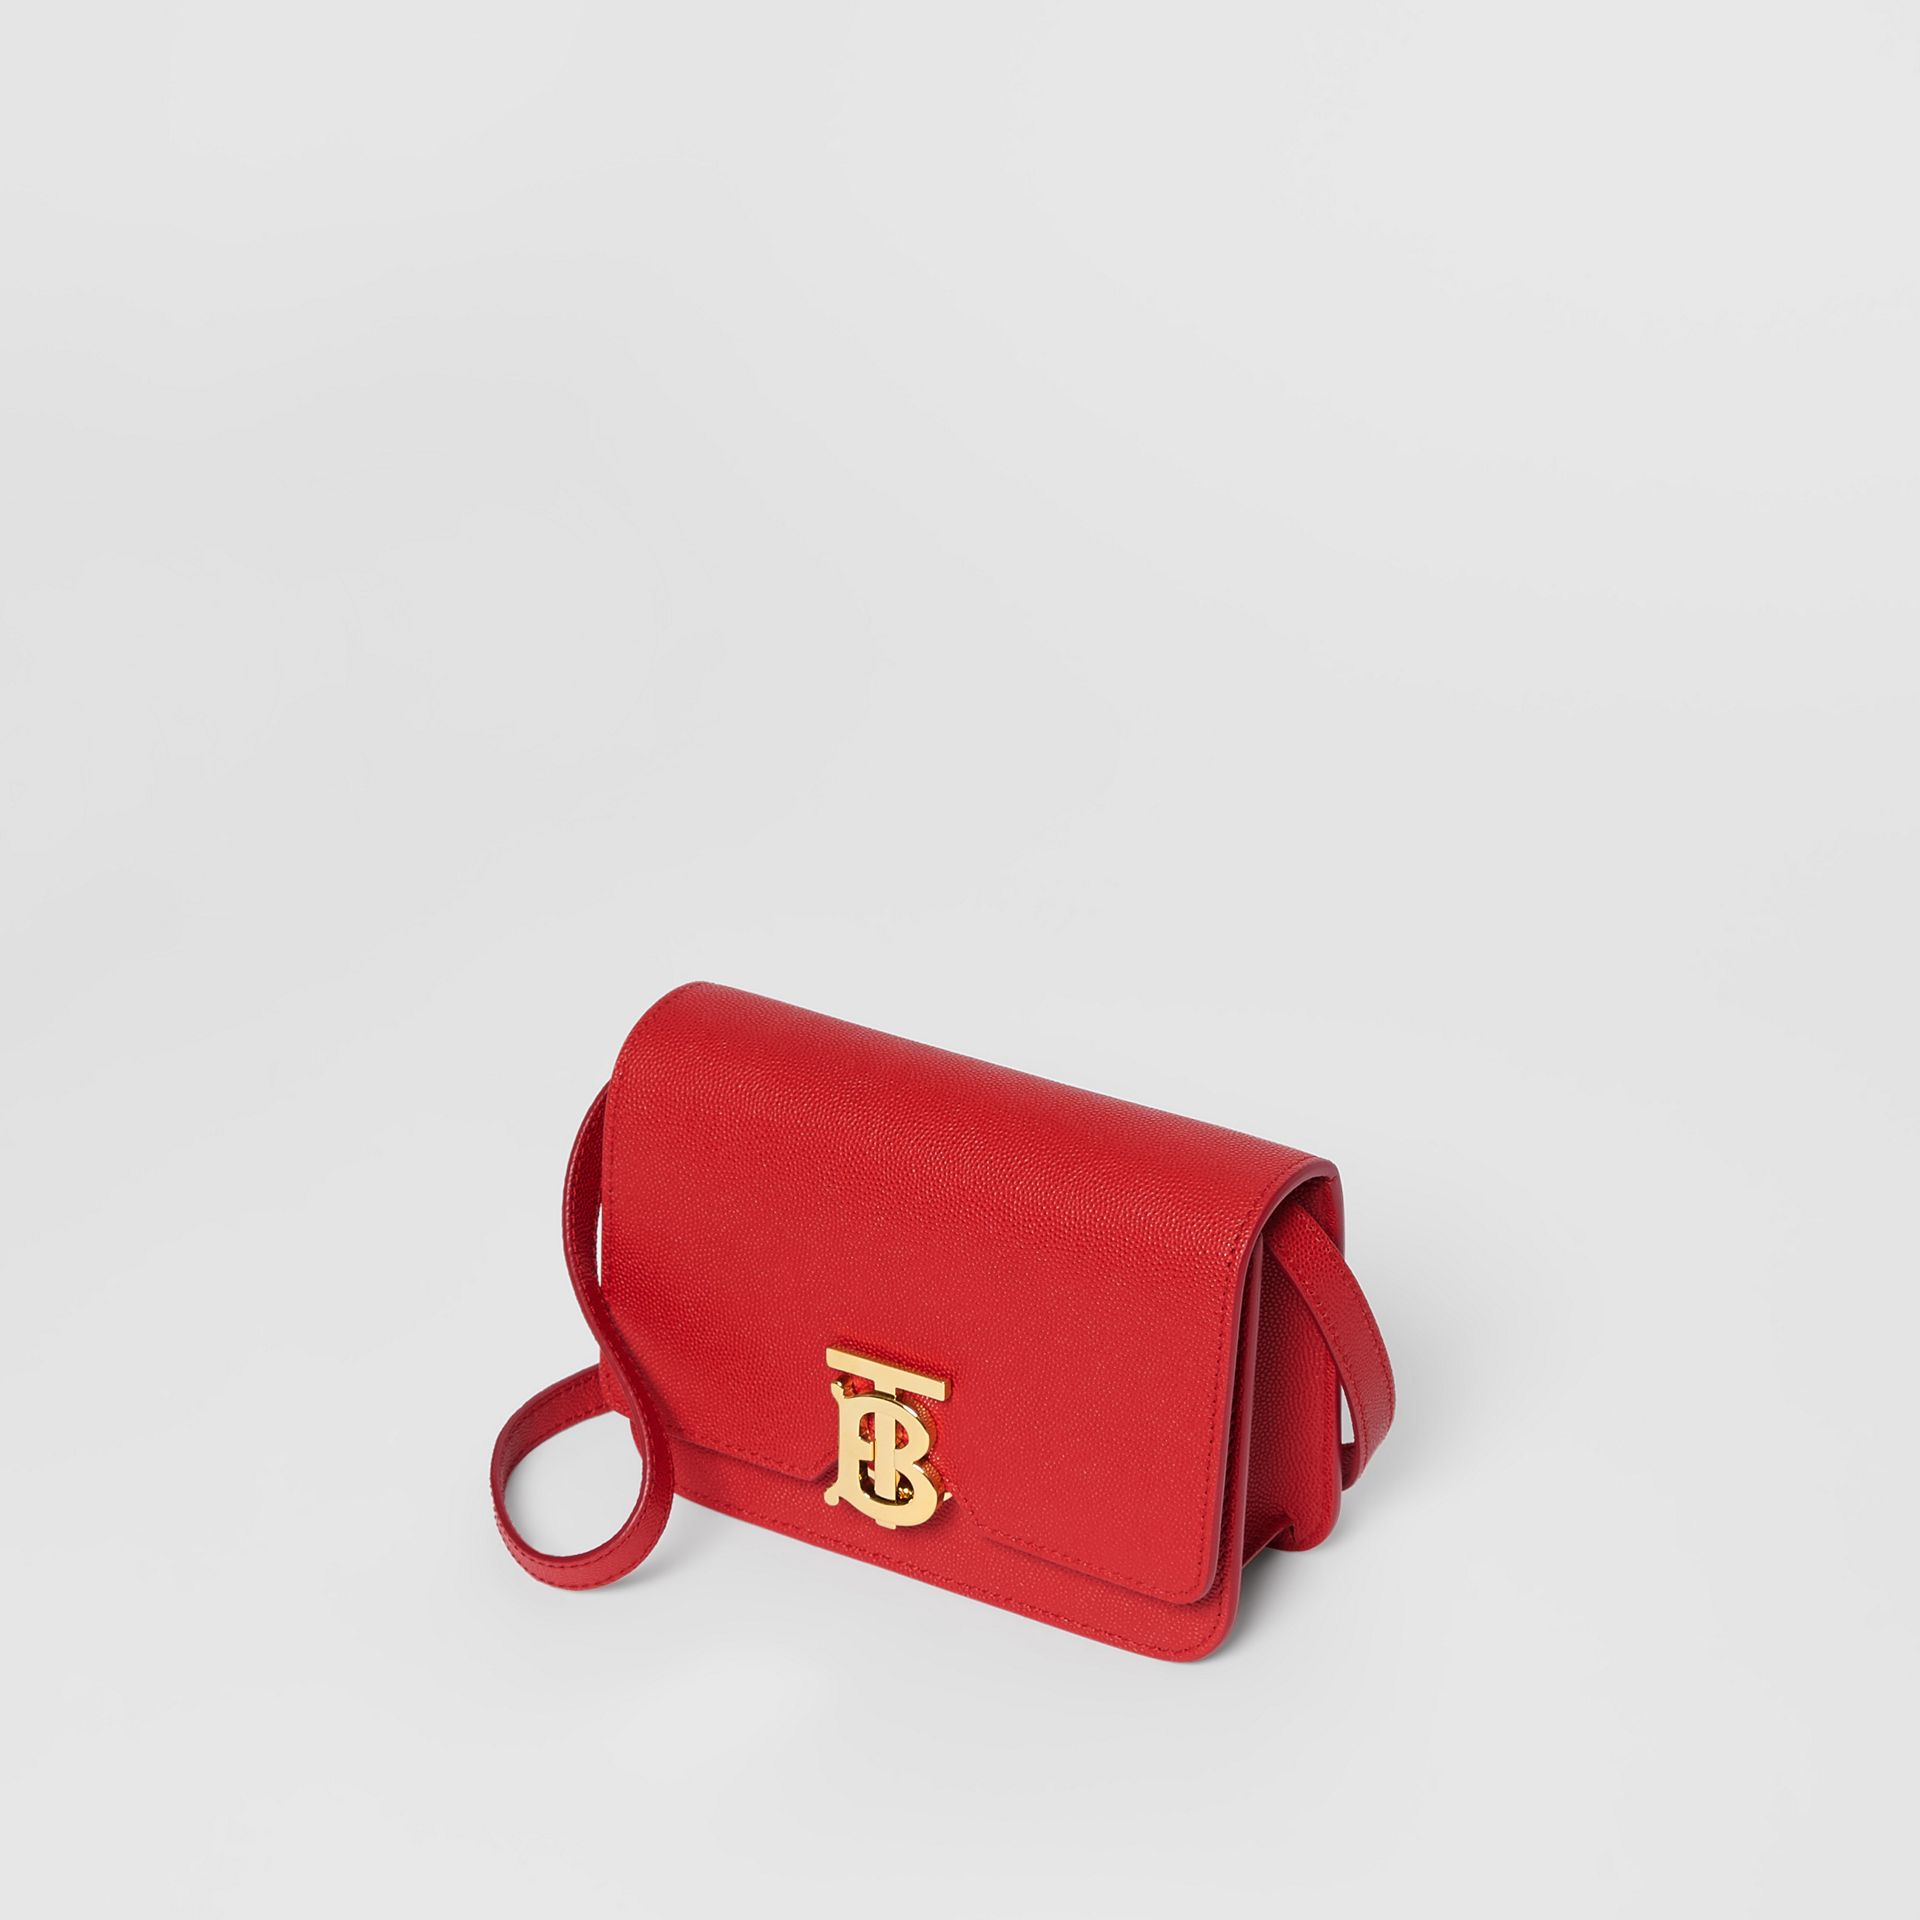 Mini Grainy Leather TB Bag in Bright Red - Women | Burberry - gallery image 3